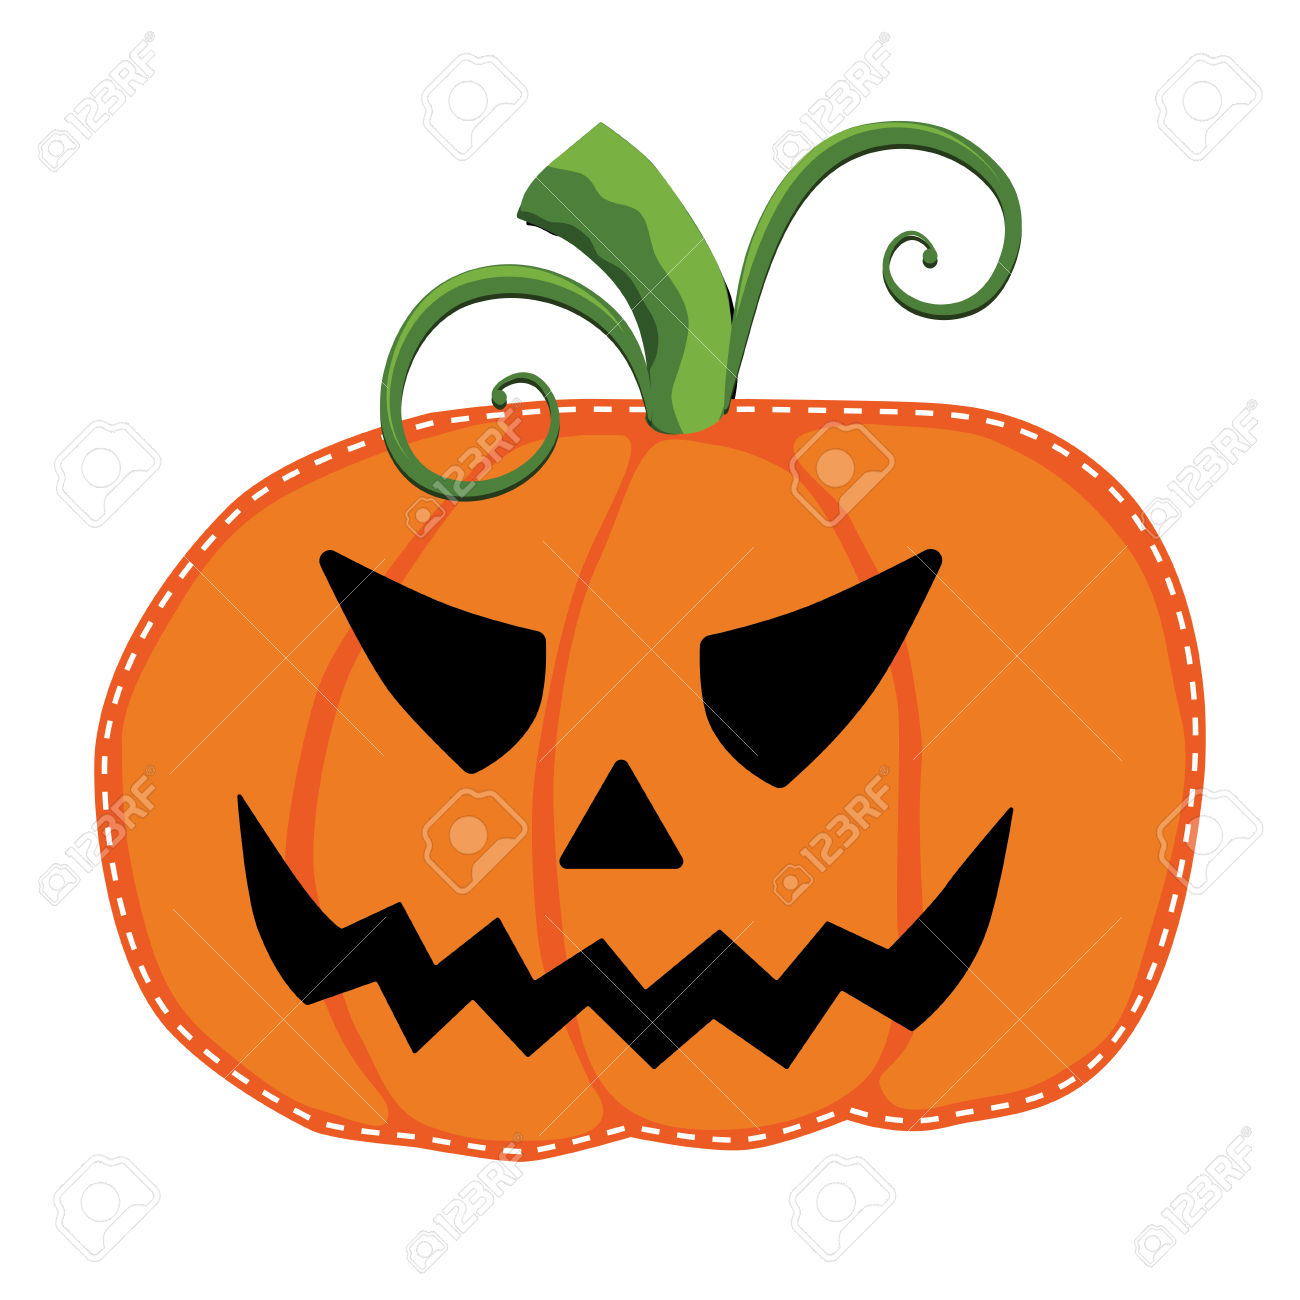 Jack O Lantern Or Carved Pumpkin On A Transparent Background.